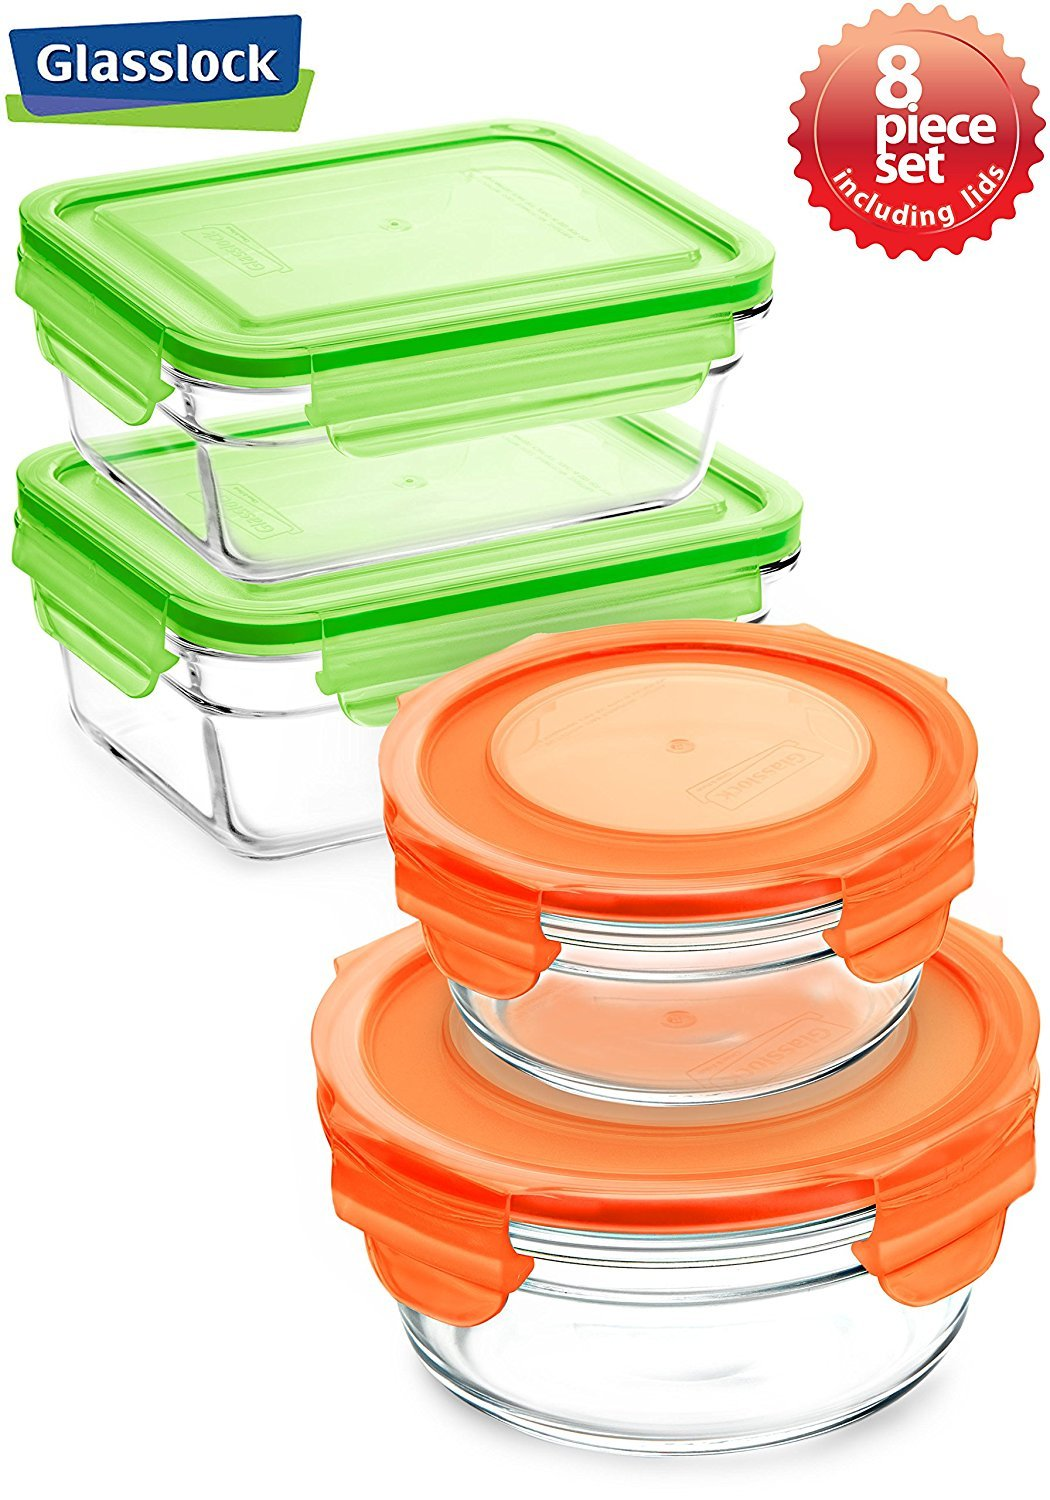 Snaplock Lid Tempered Glasslock Storage Round and Rectangular Containers 8pc set Combo with Orange and Green Lid - Microwave & Oven Safe Spill Proof